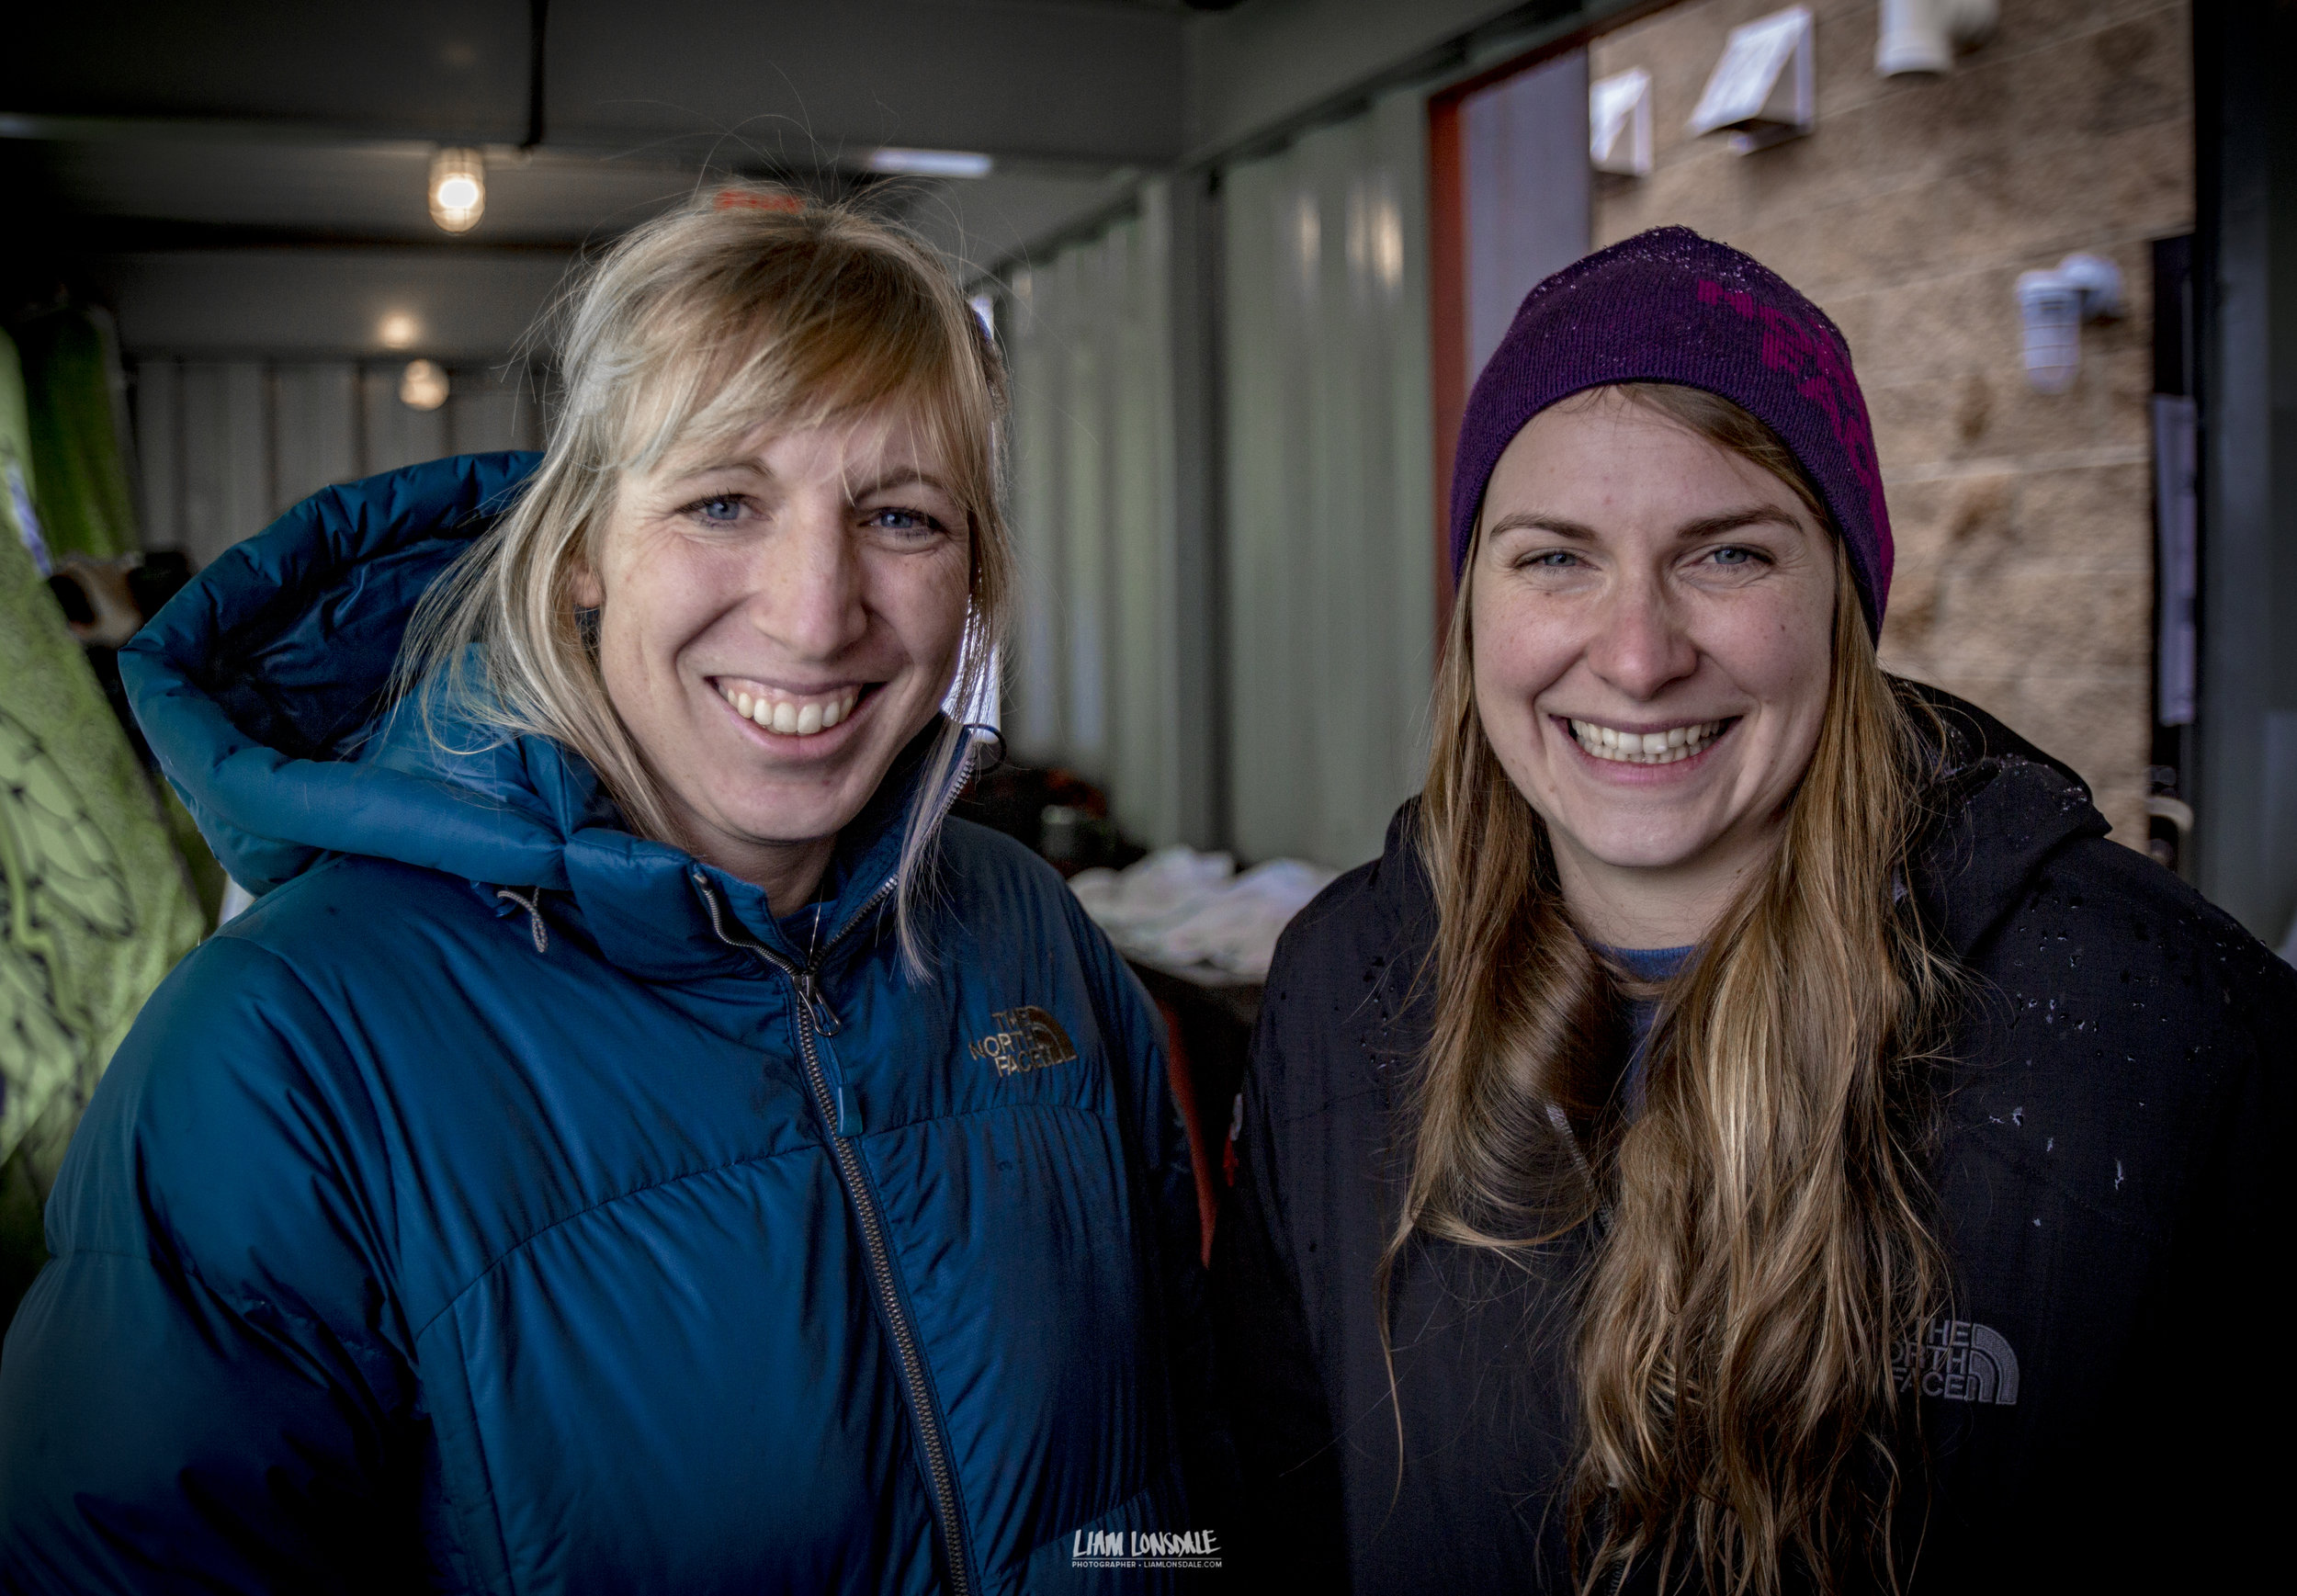 Team UIAA:Sophie G (L) and Carol K (R), a right lovely pair of lasses © Liam Lonsdale 2016